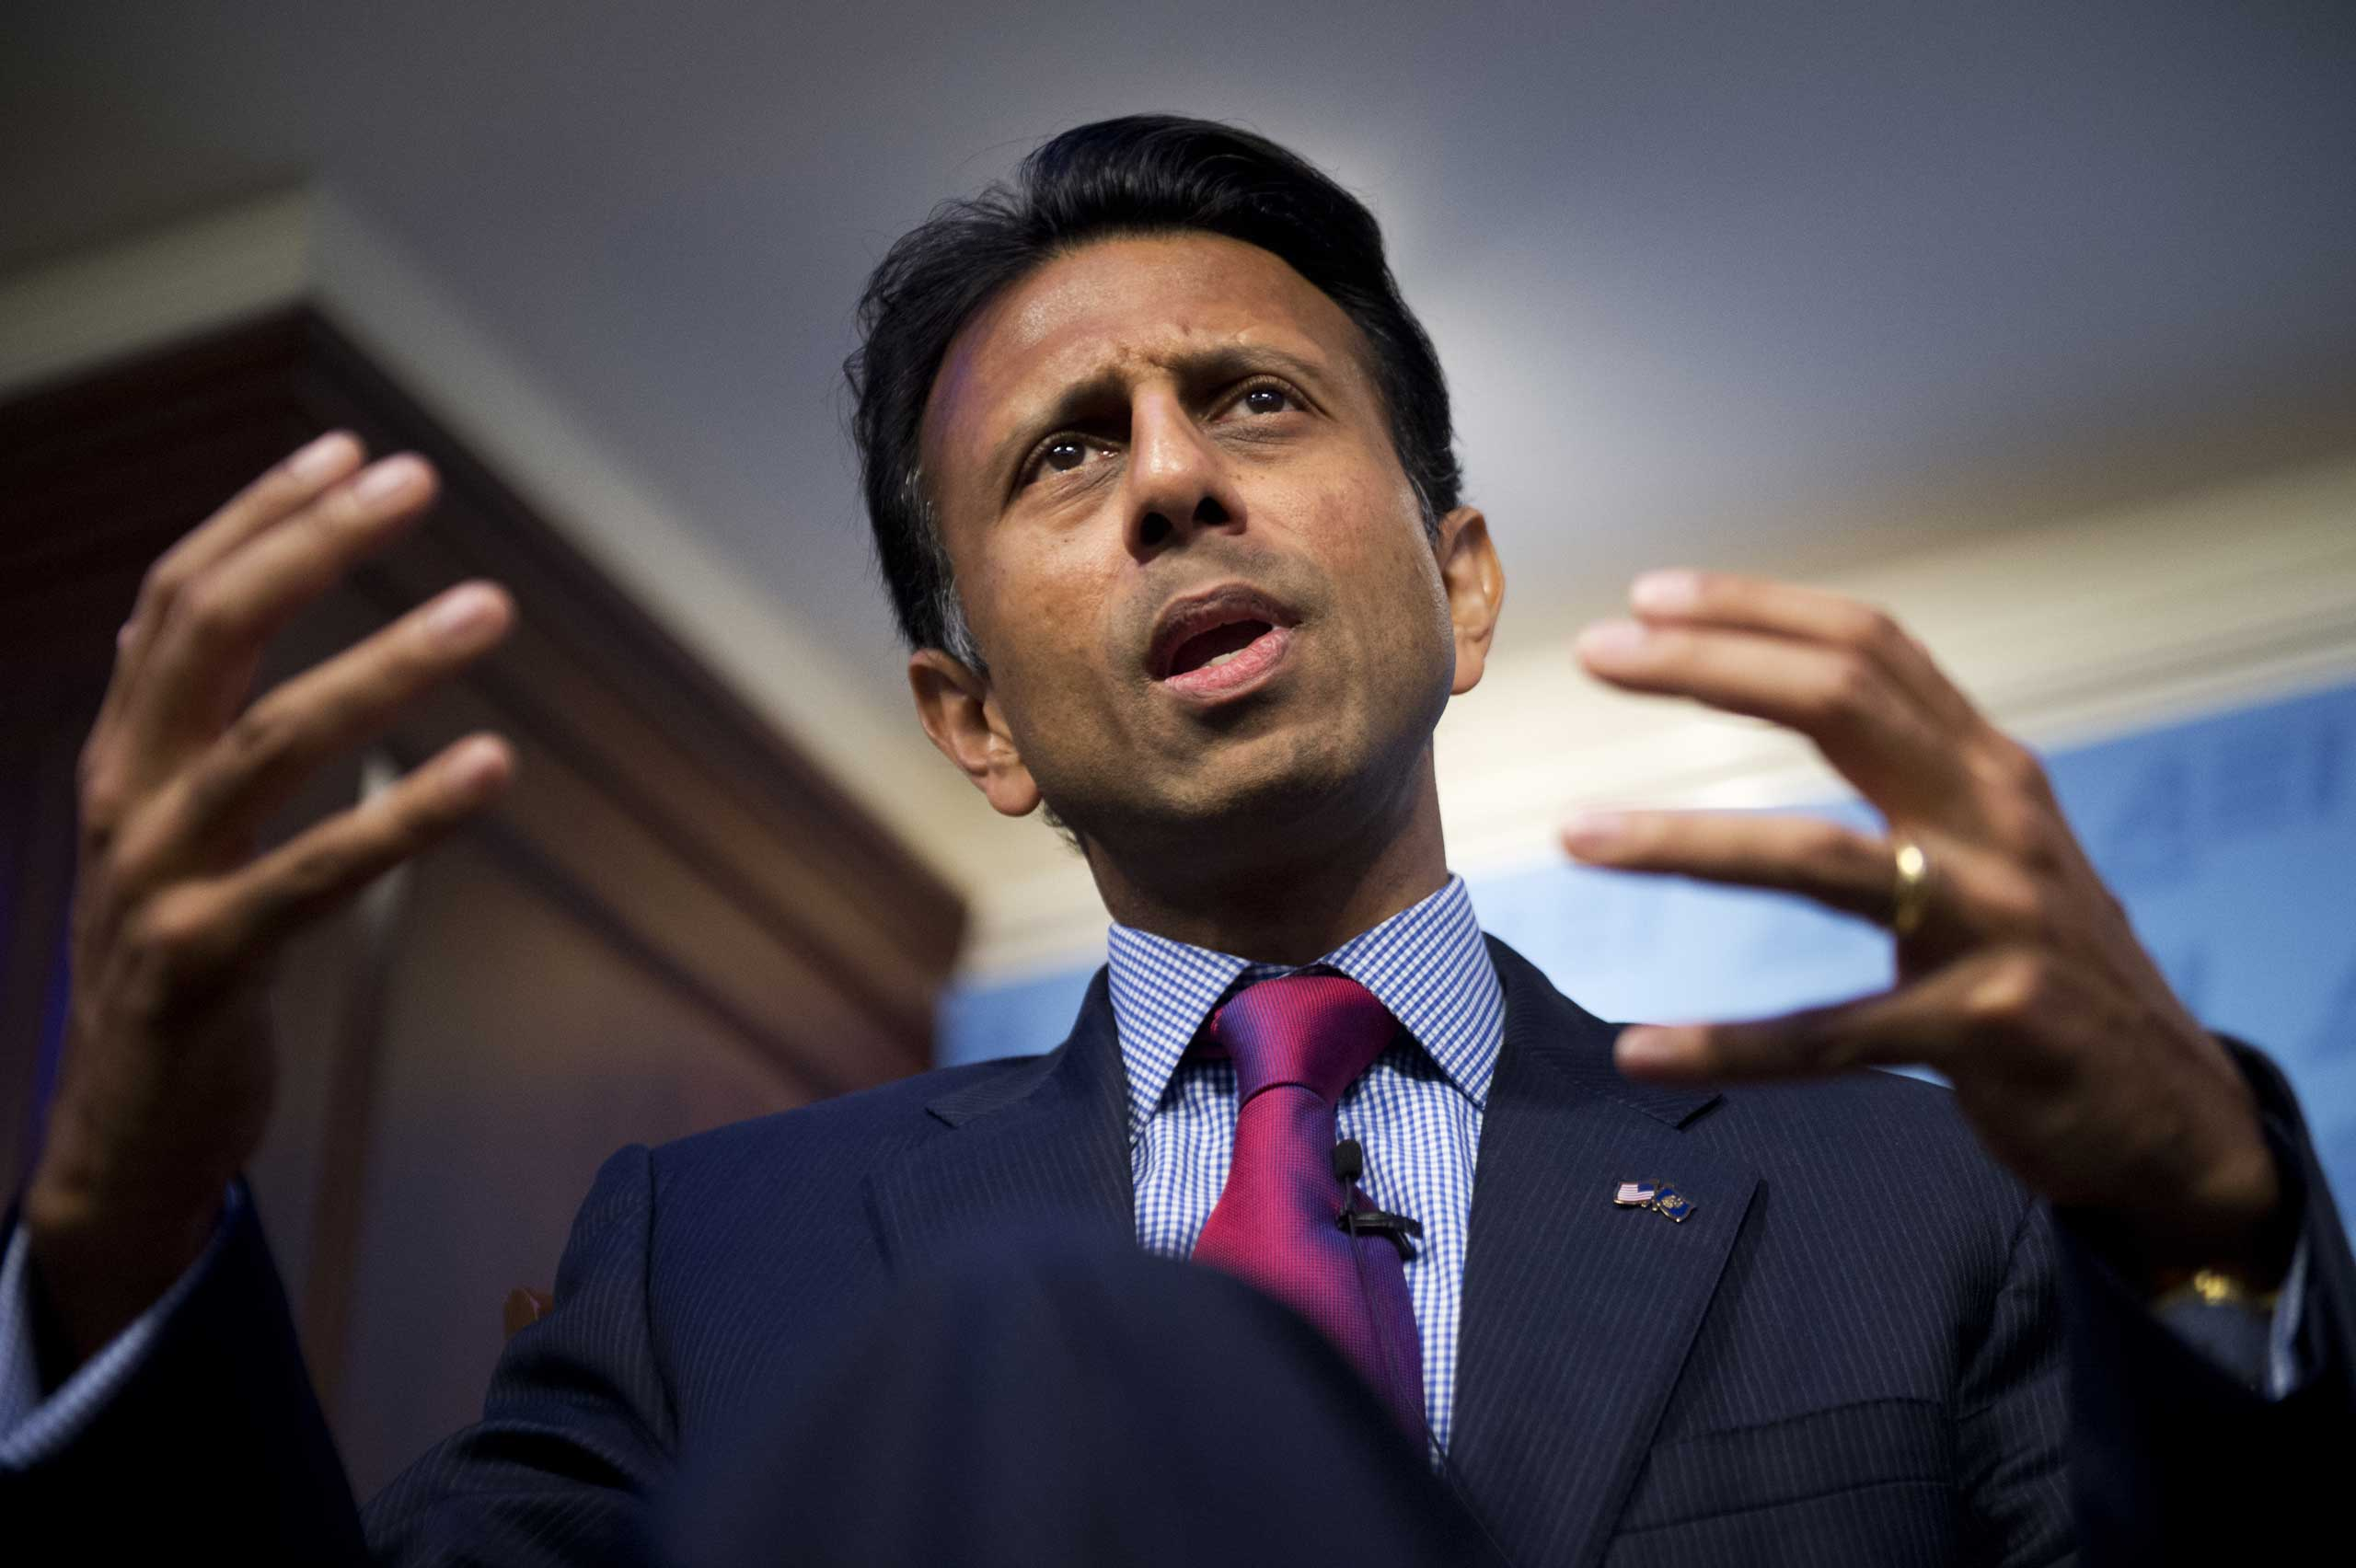 Louisiana Gov. Bobby Jindal delivers a speech at the American Enterprise Institute in Washington on Oct. 6, 2014.